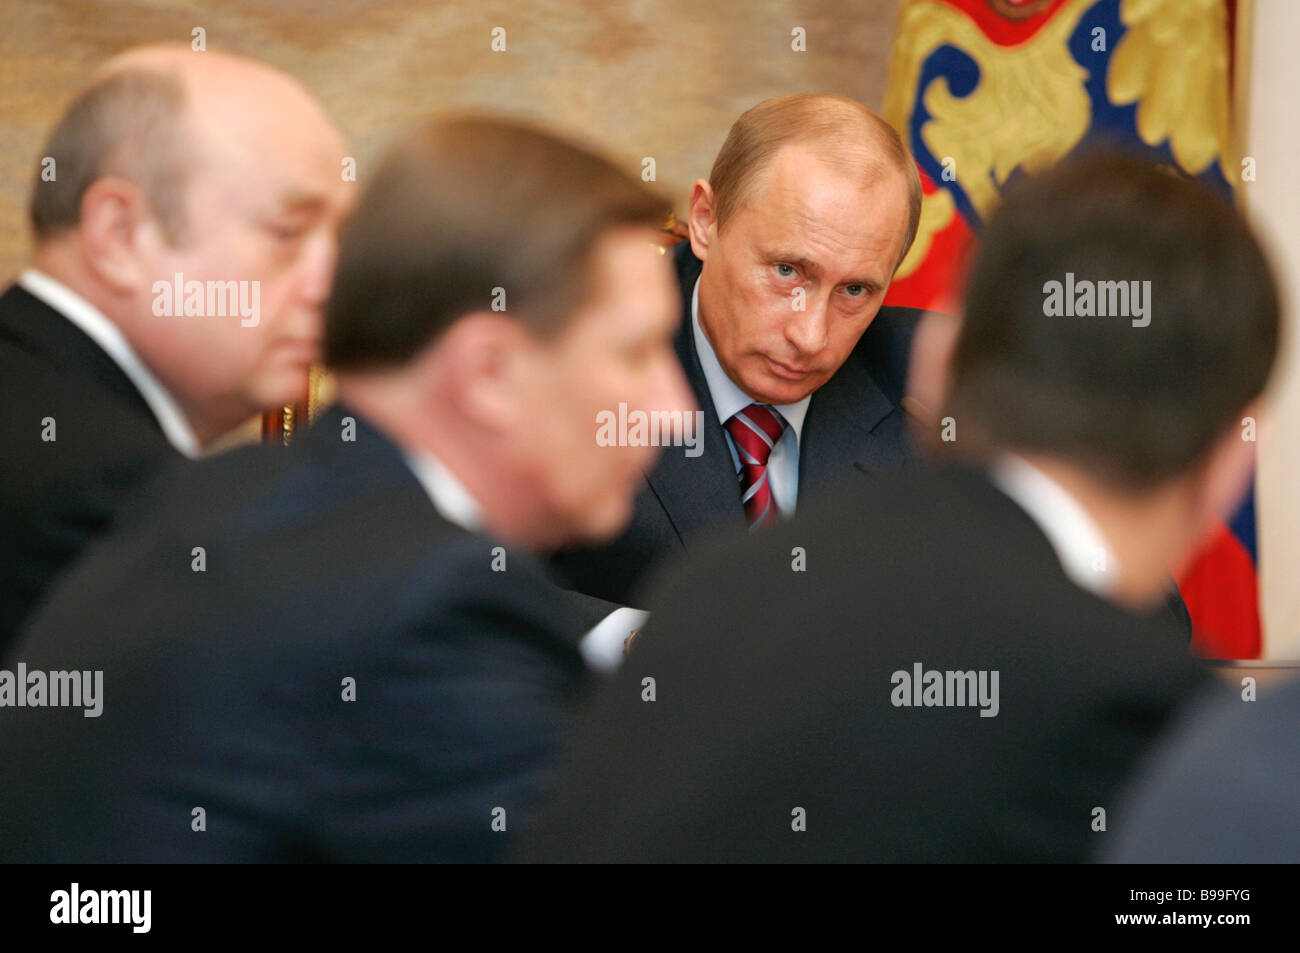 Russian President Vladimir Putin second from left meeting with the Cabinet in the Kremlin - Stock Image